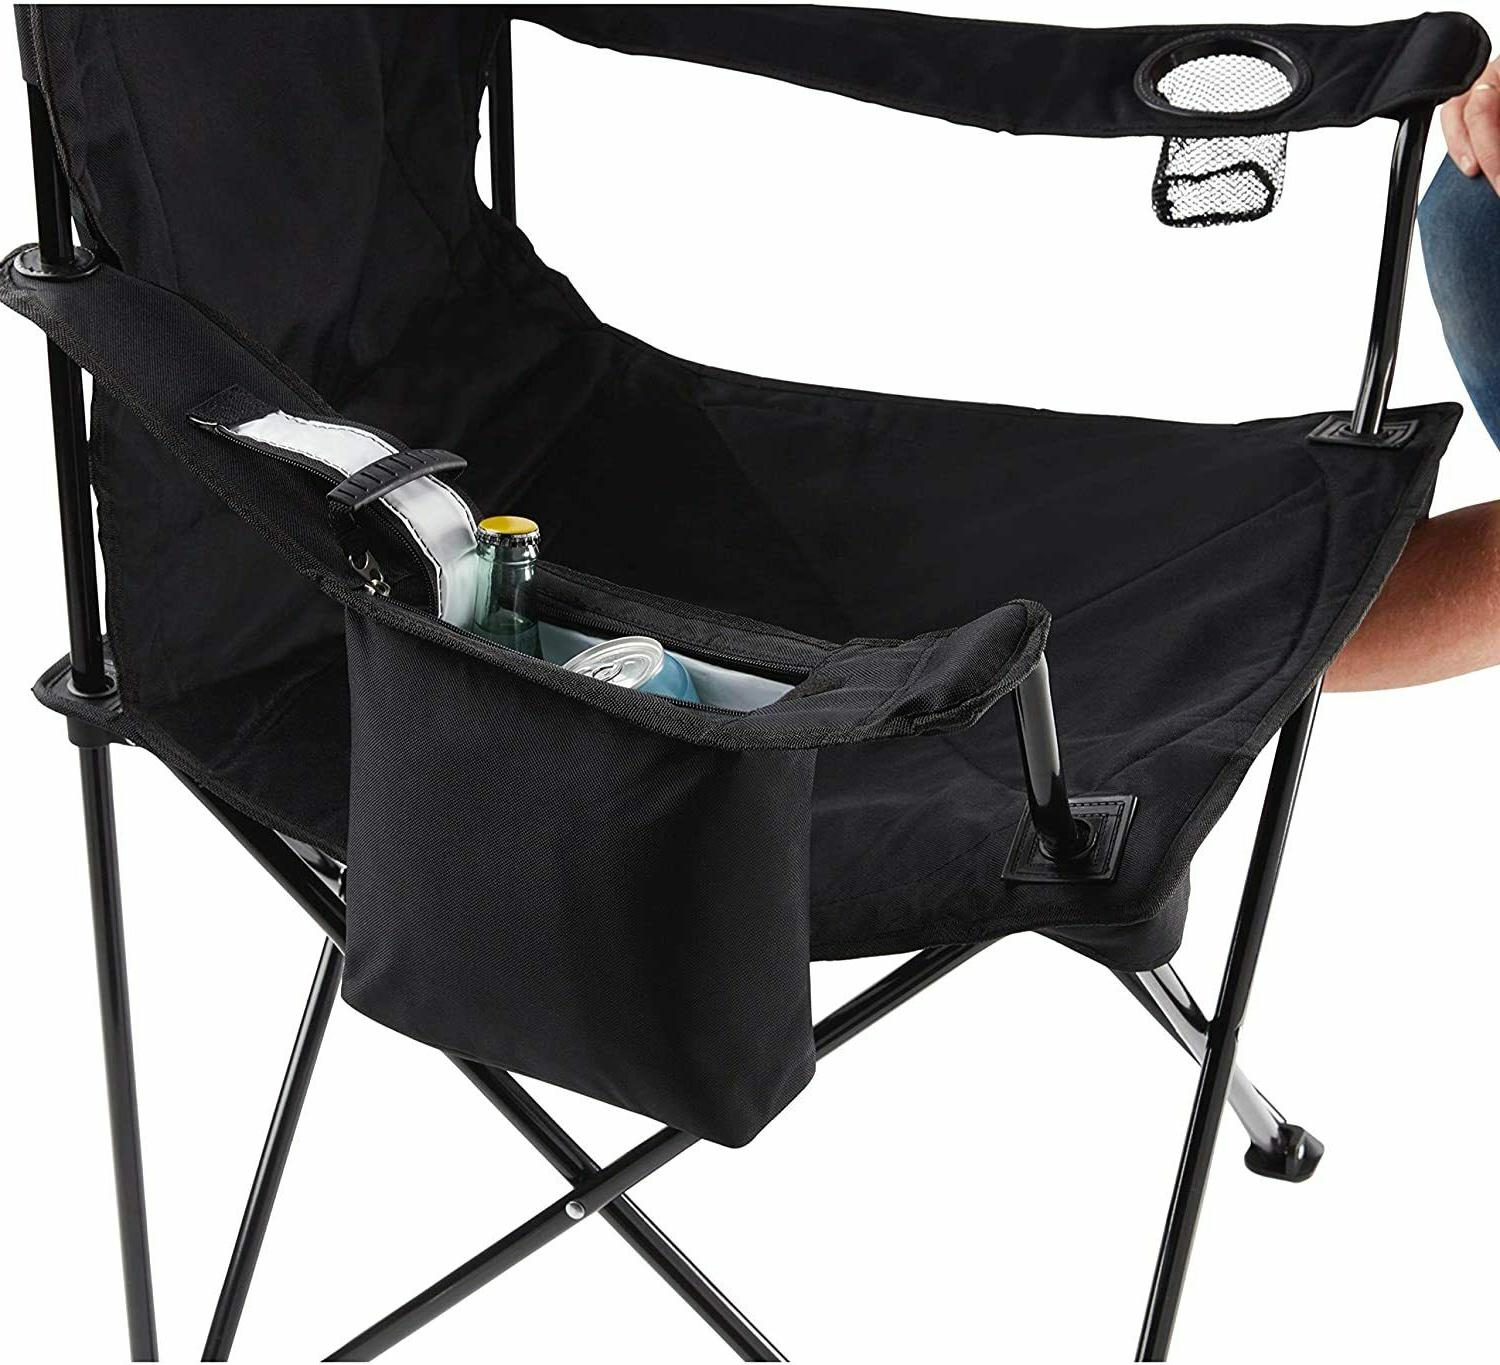 Portable Camping Mesh Camping Chair Heavy